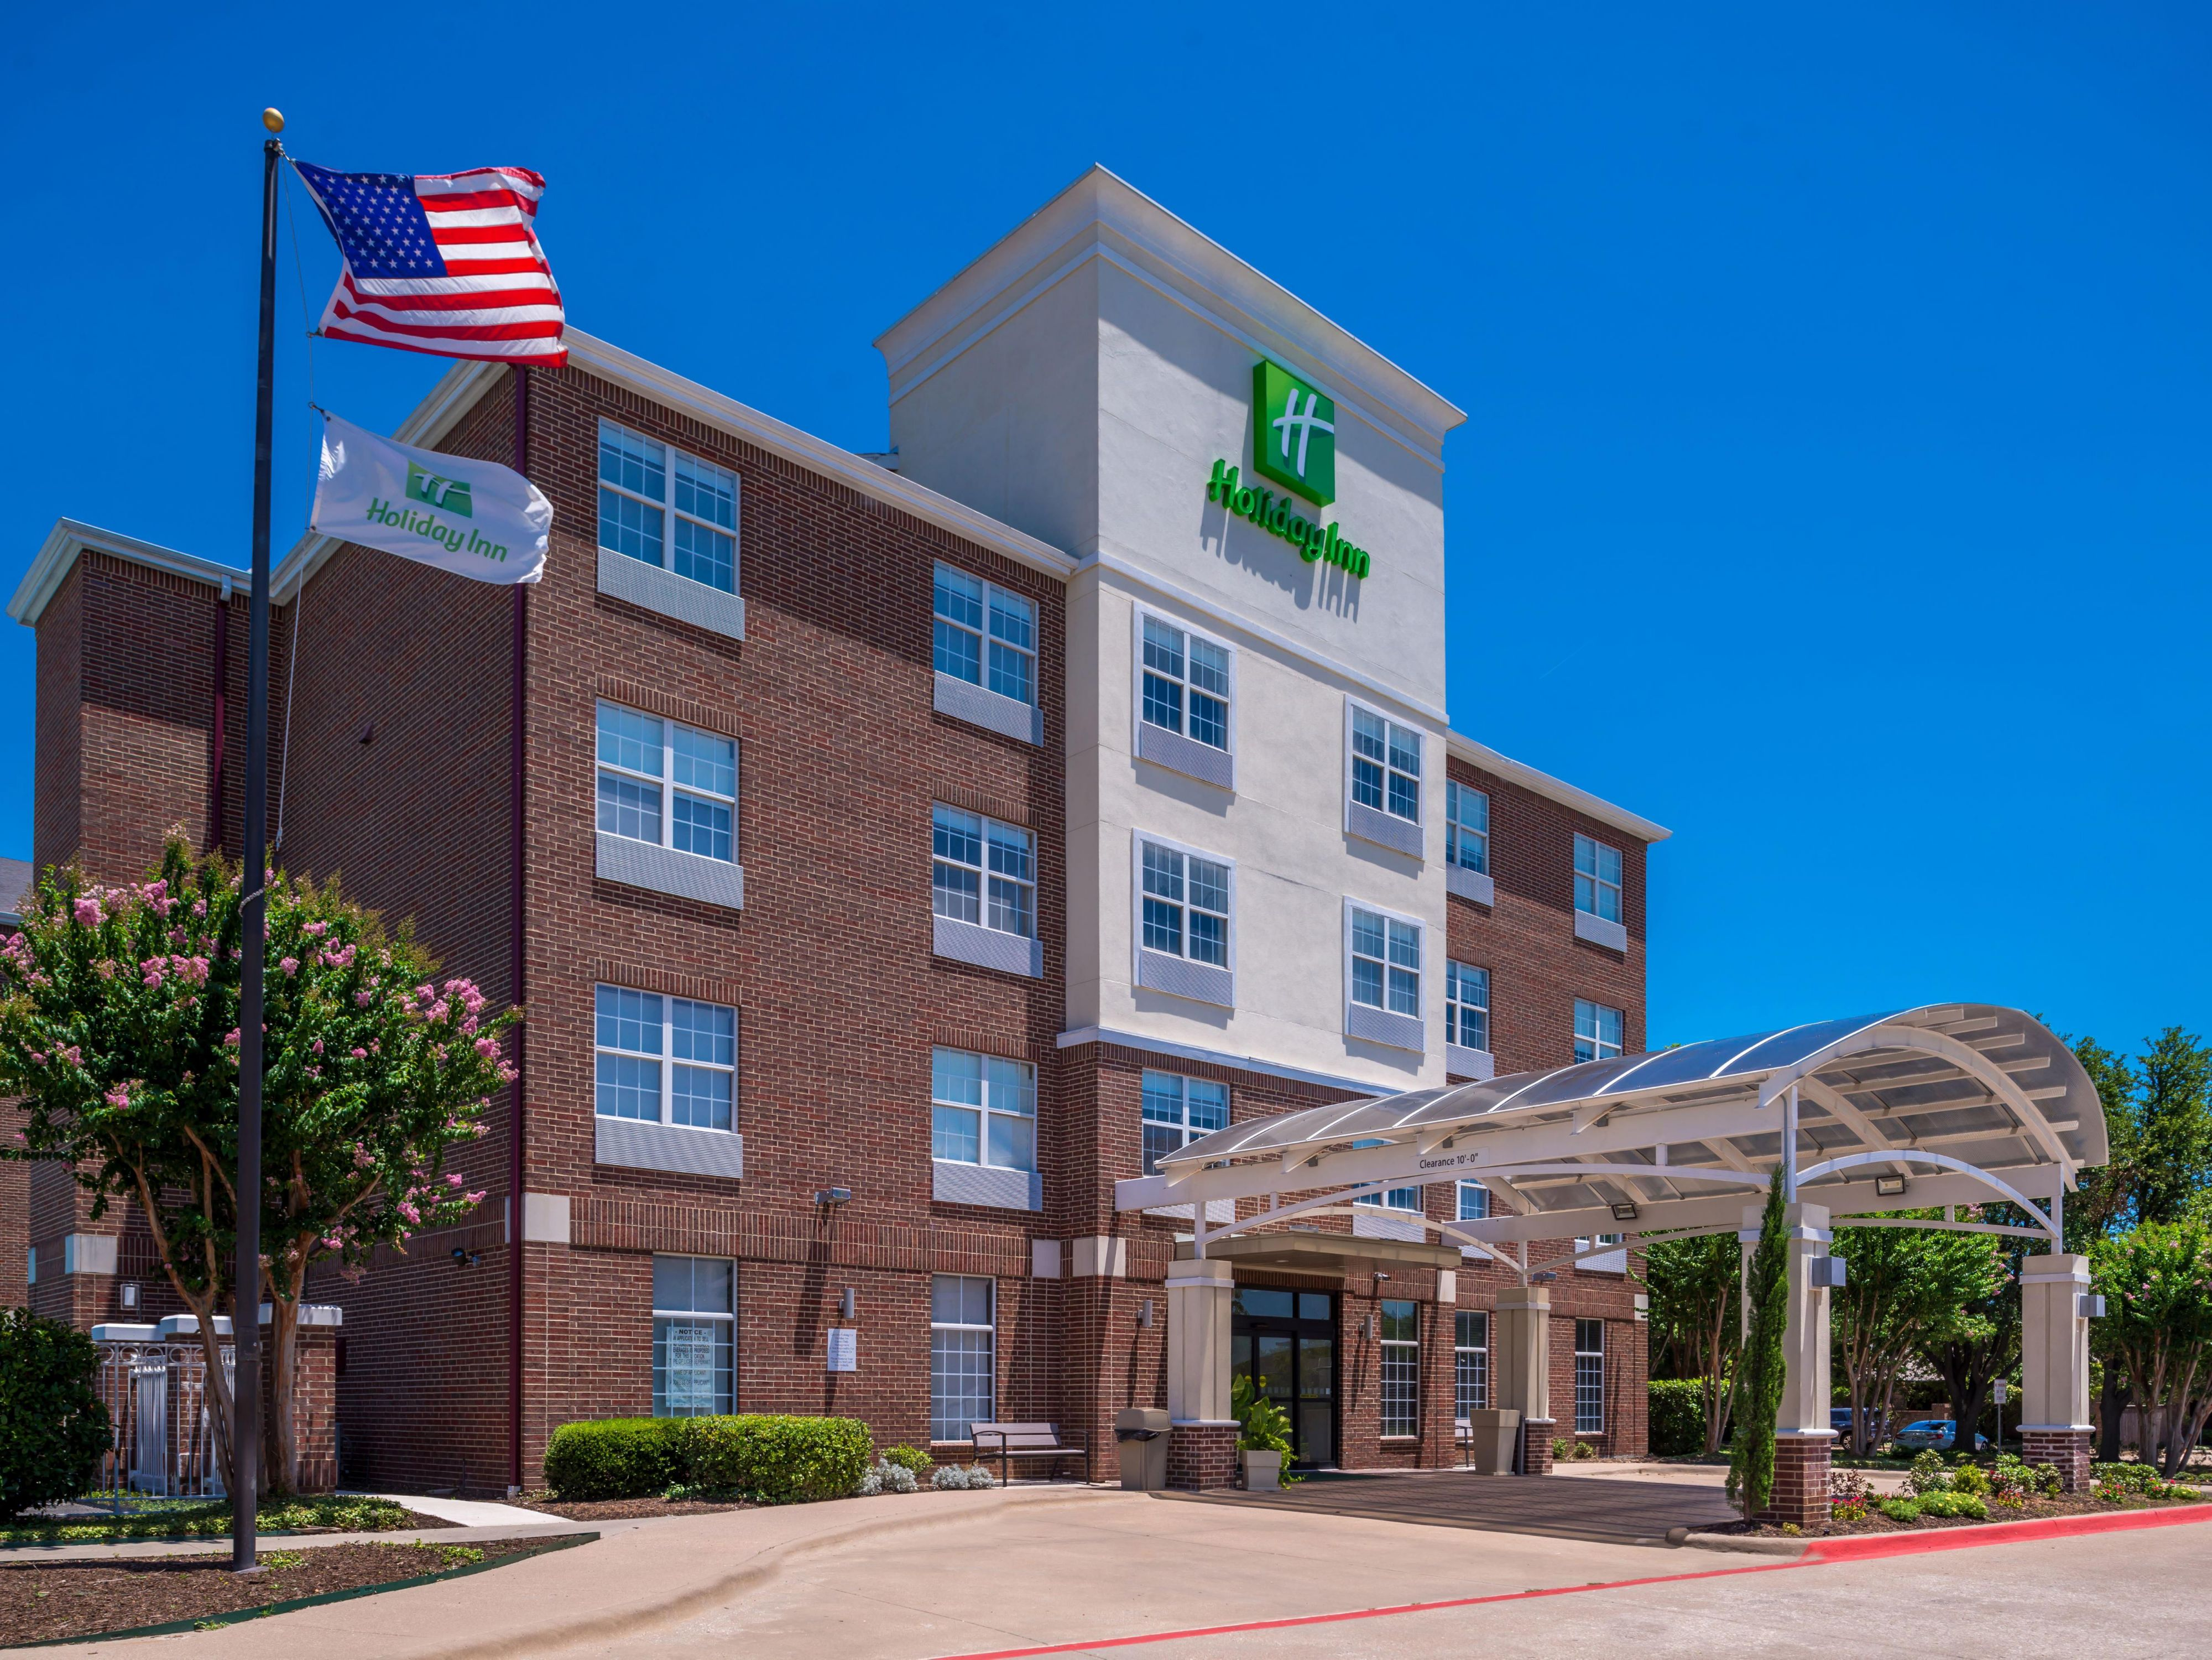 Staybridge Suites Dallas Extended Stay Hotel Suites by IHG